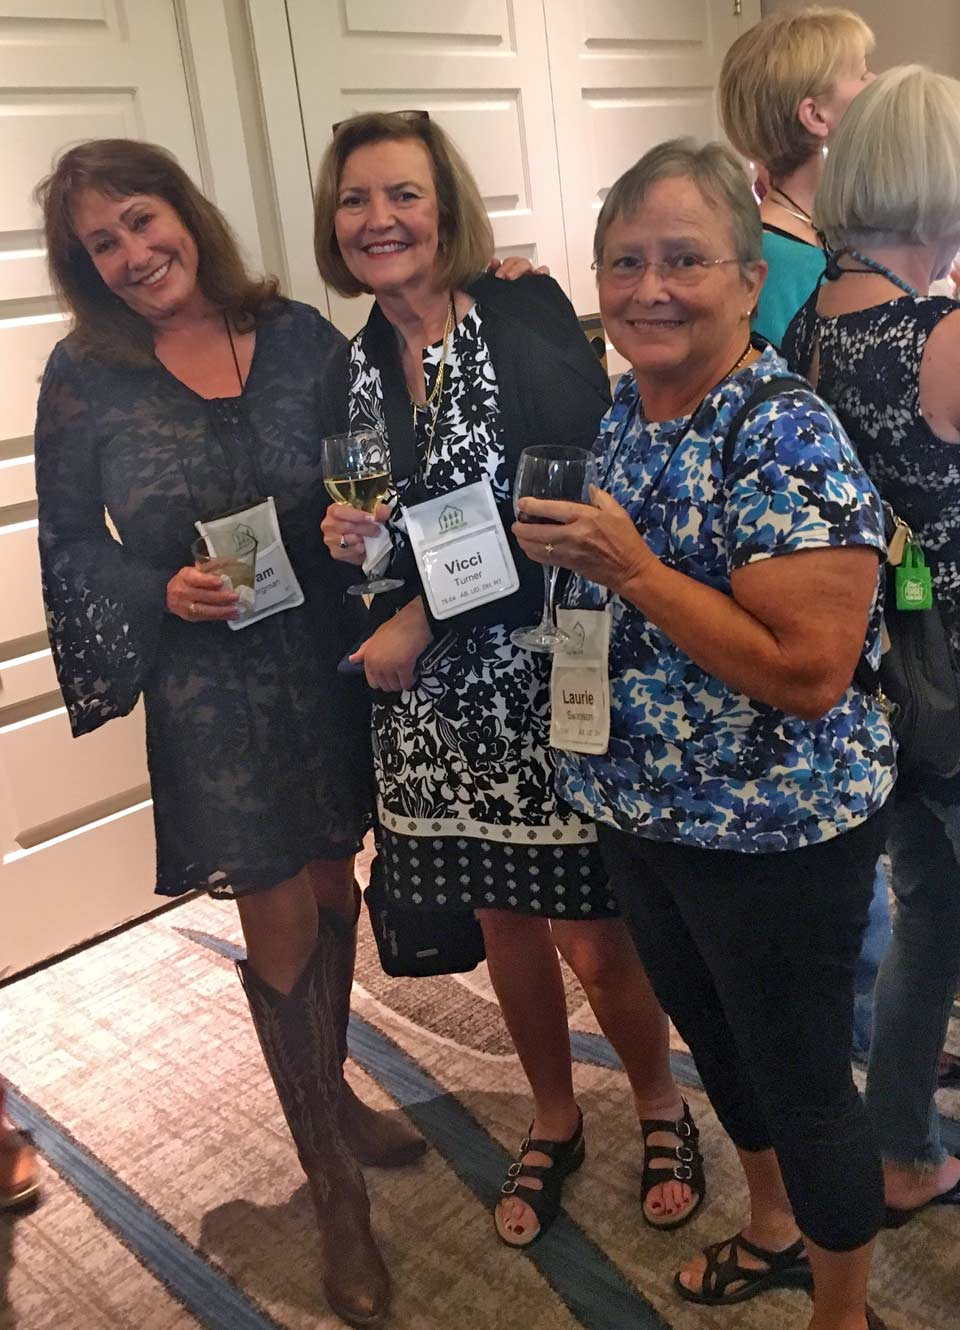 Pam Bergman, Vicci Turner, and Laurie Swanson